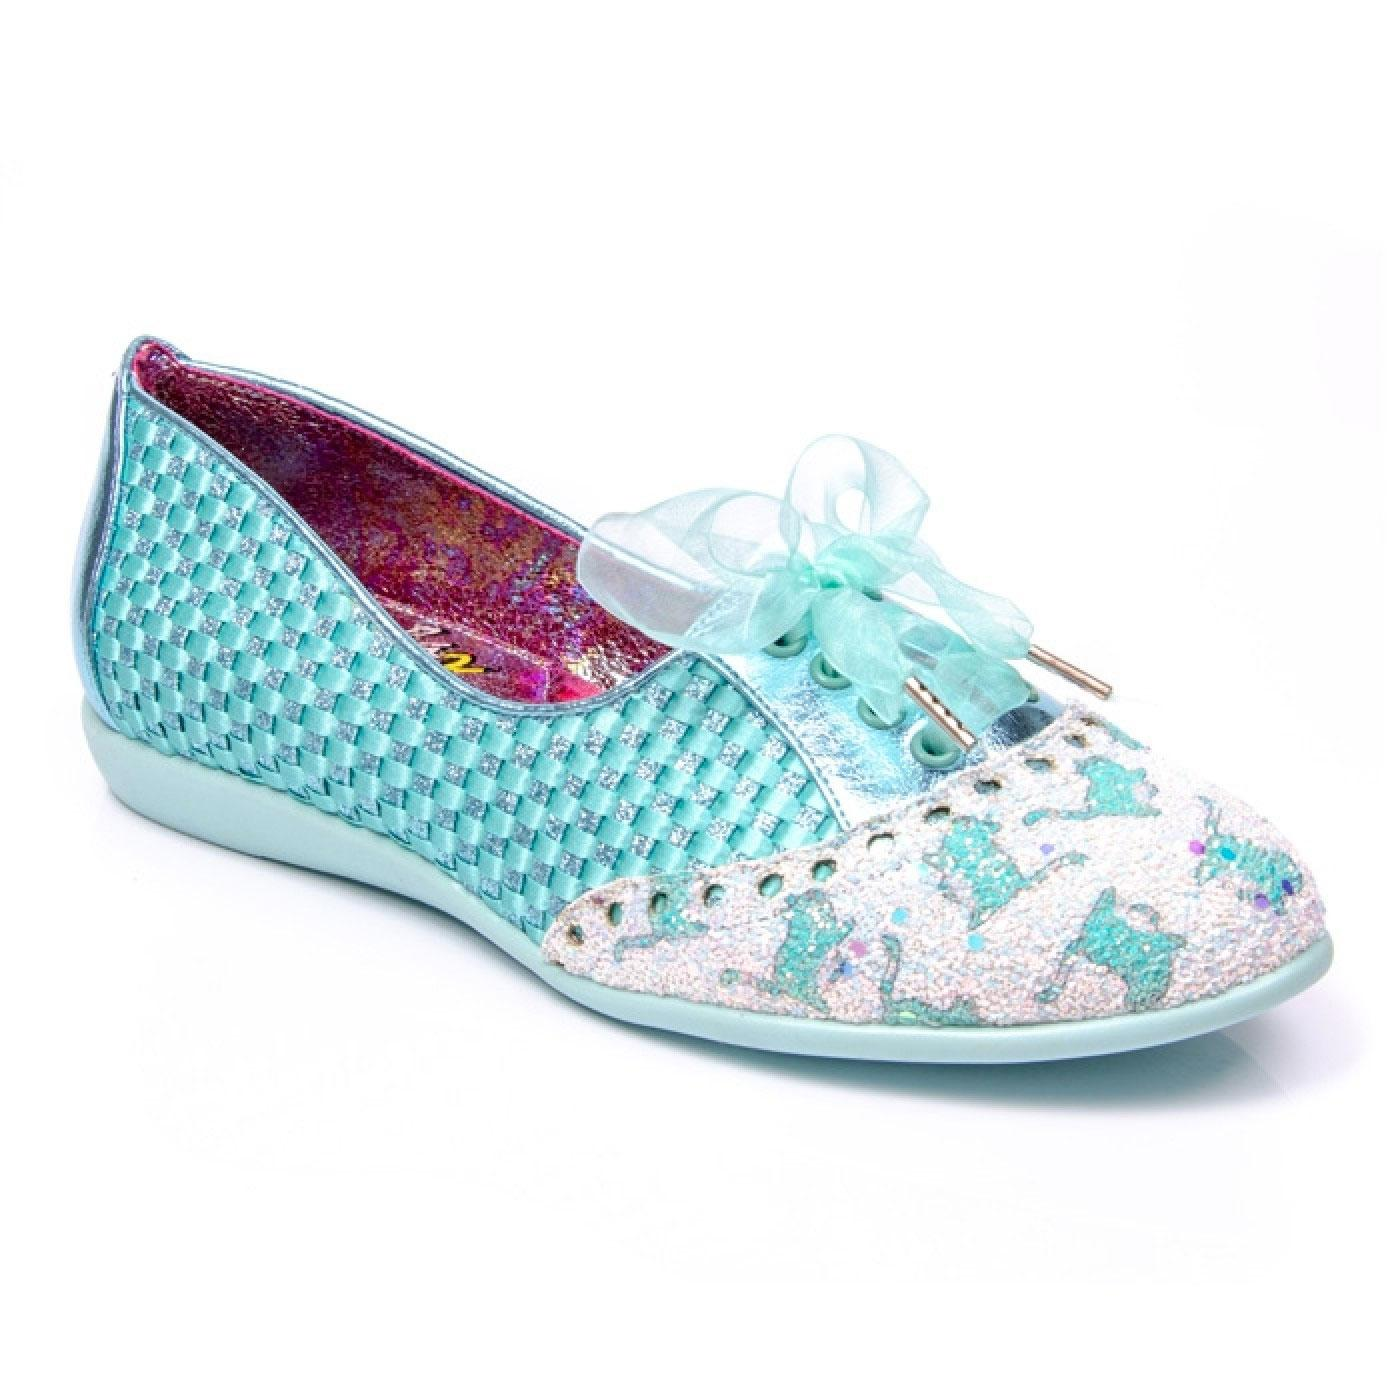 Passion IRREGULAR CHOICE Retro Woven Kitty Flats